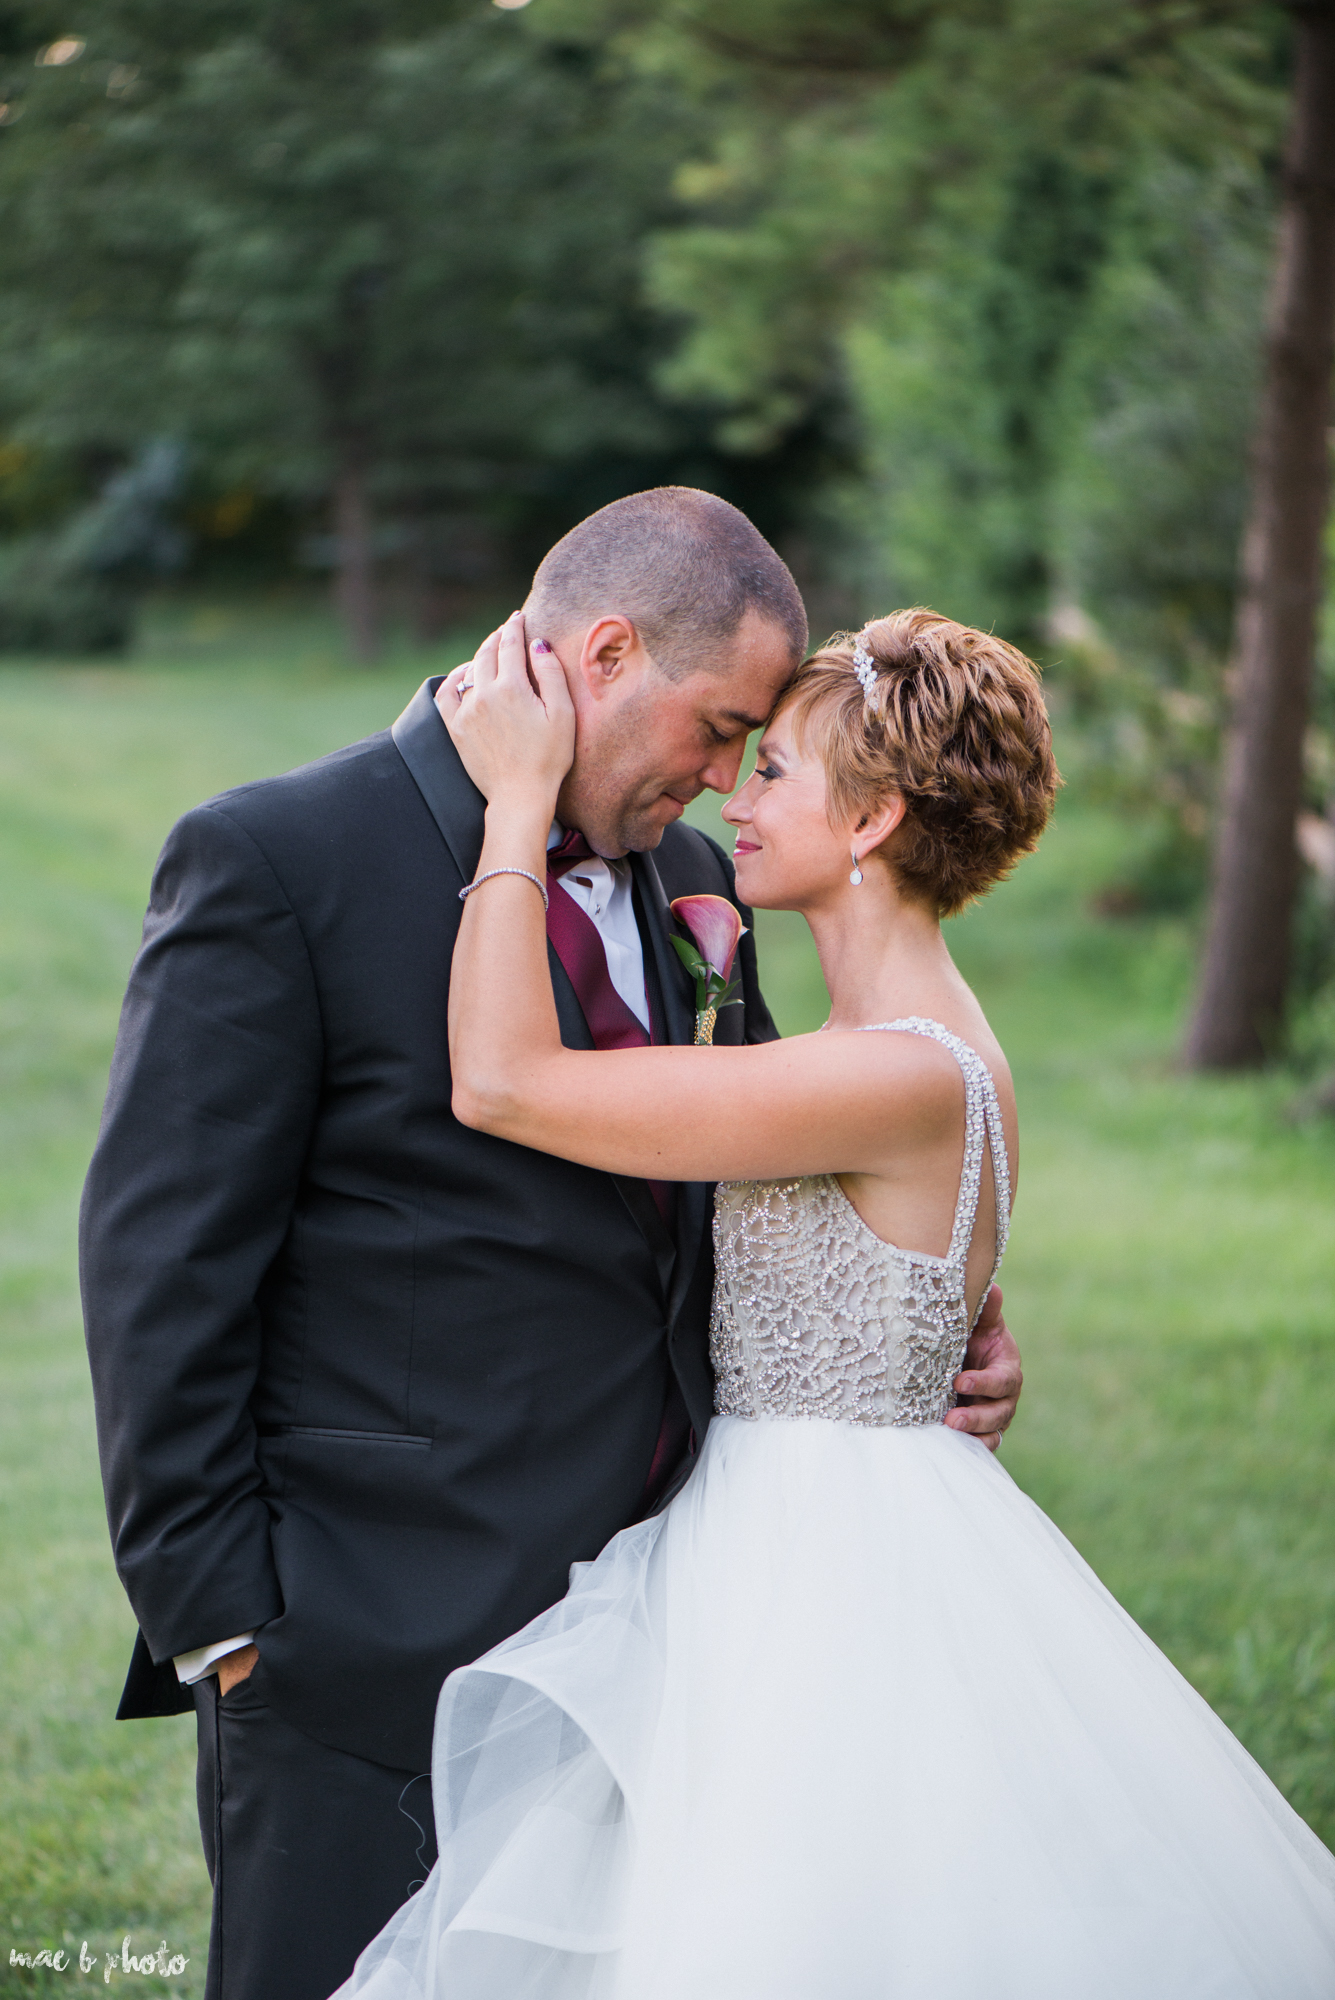 Mary Catherine & Chad's Elegant and Intimate Country Club Wedding at Squaw Creek in Youngstown Ohio by Mae B Photo-77.jpg